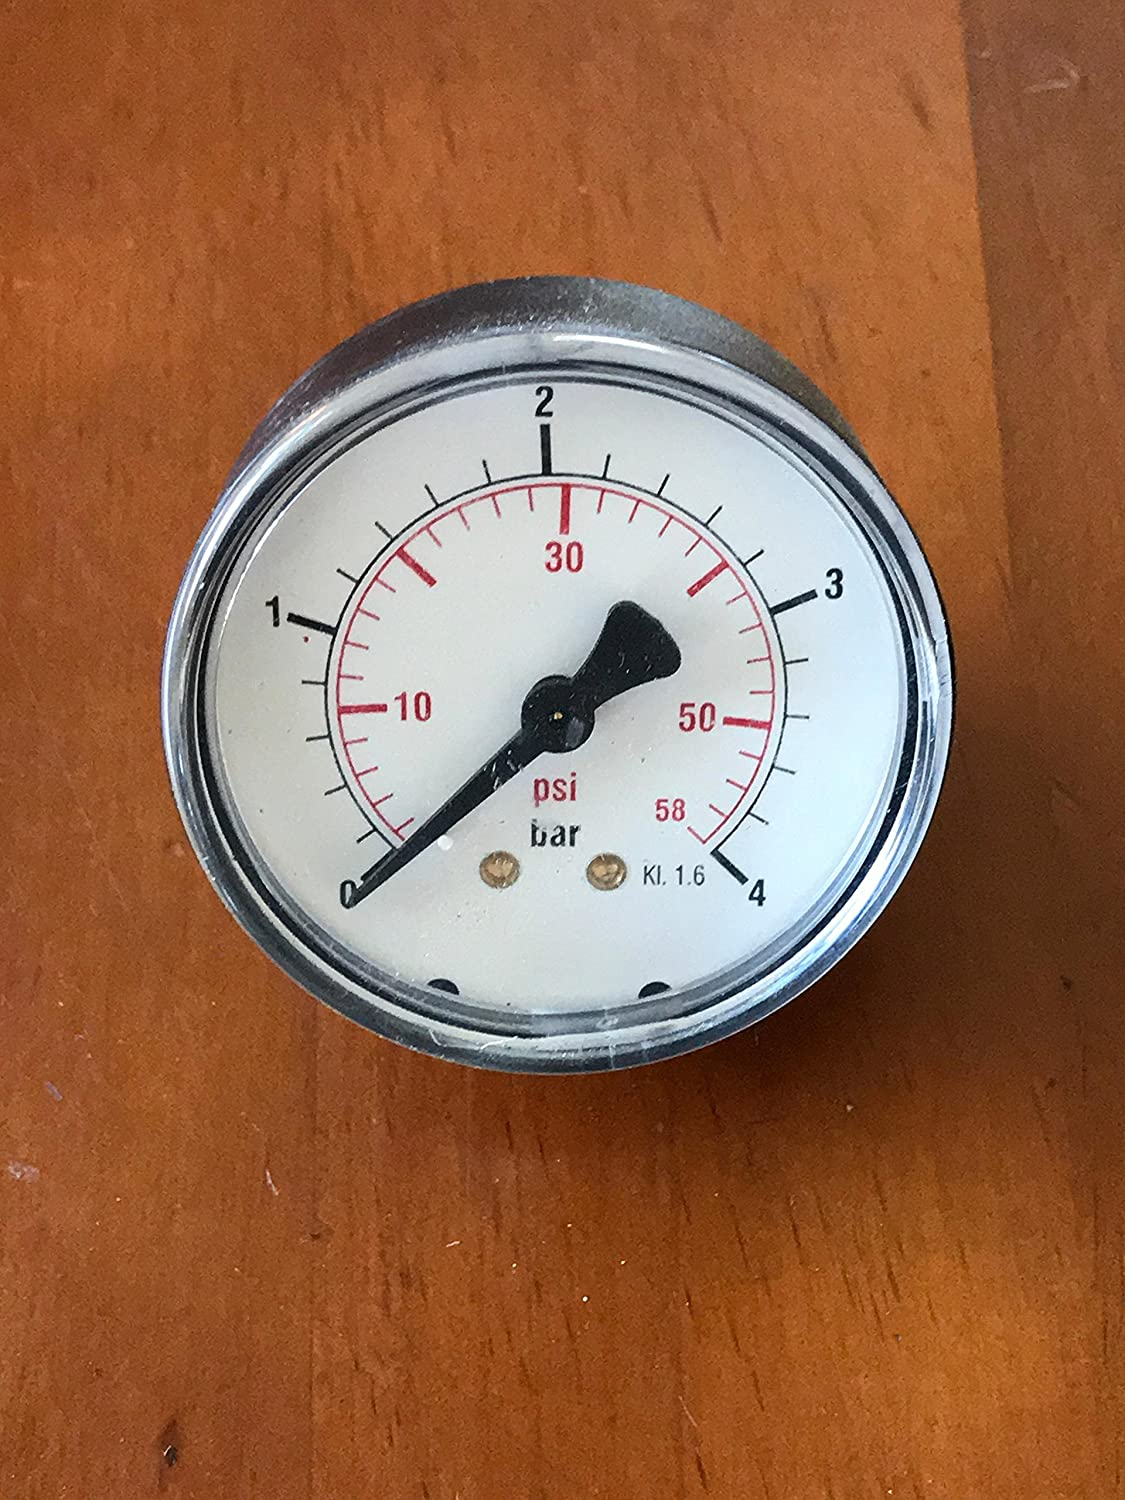 1/4� Pressure gauge back mounted for solvent filter pressure on Firbimatic, Union, Realstar dry cleaning machines A7361